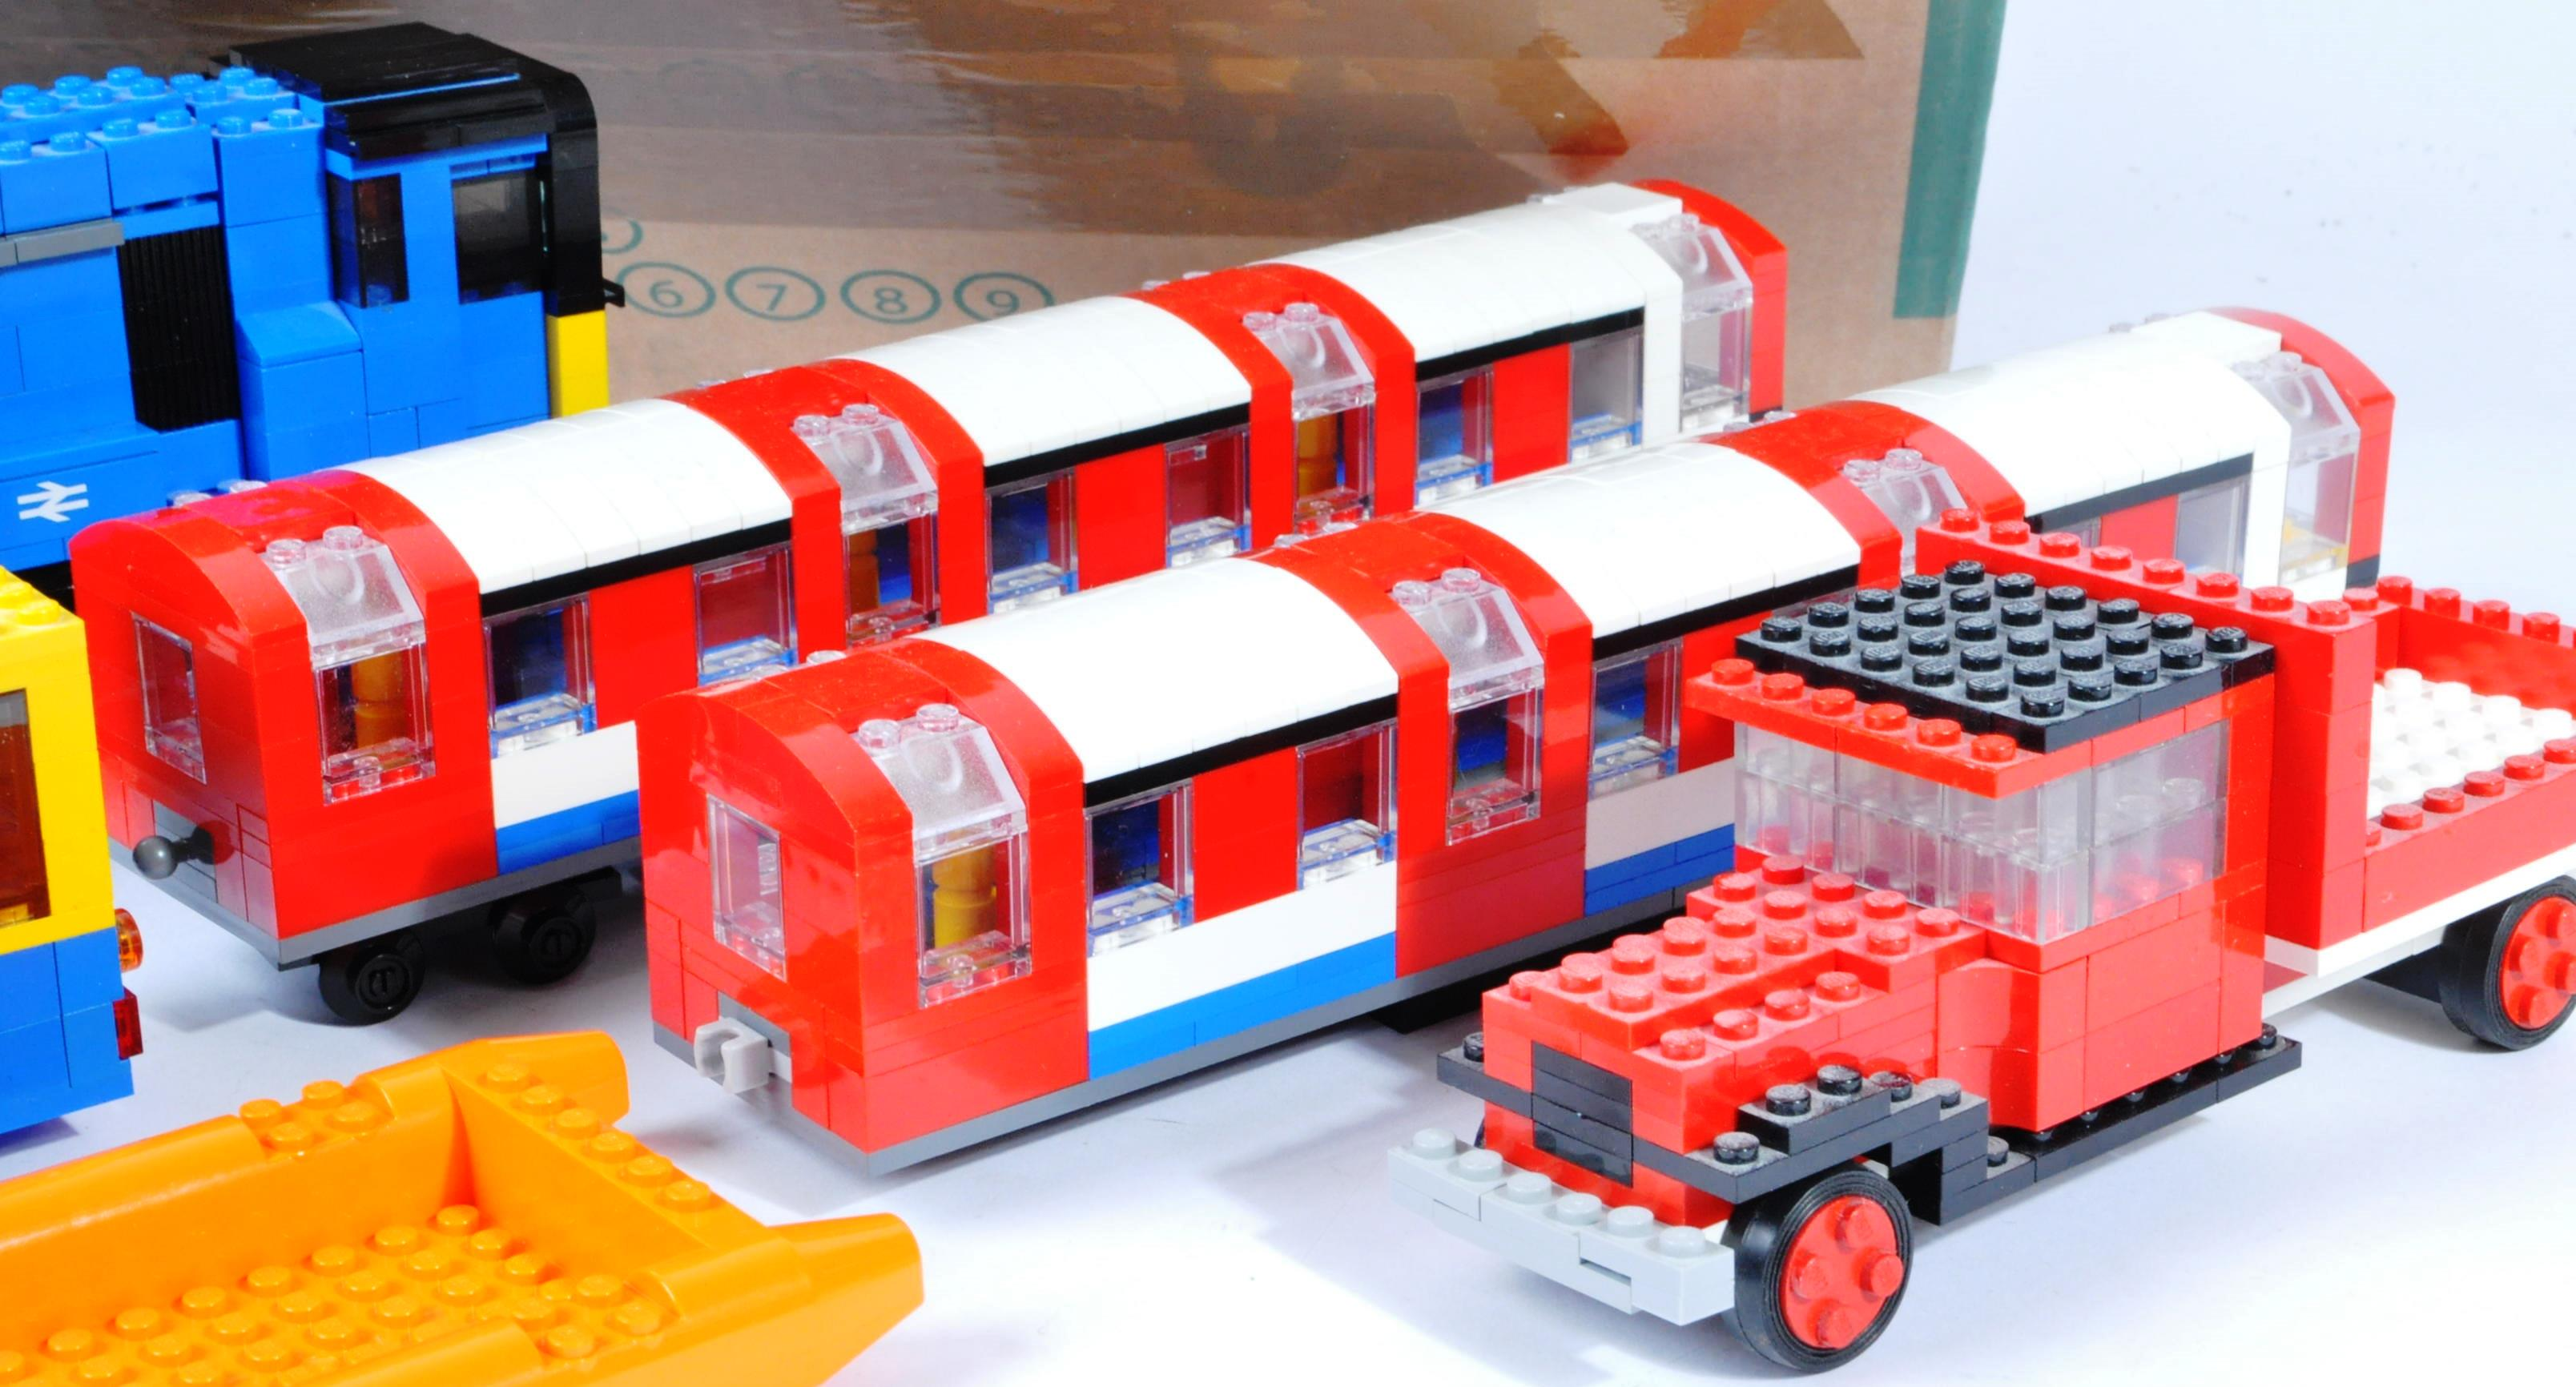 LARGE COLLECTION OF ASSORTED LOOSE LEGO BRICKS - Image 4 of 6